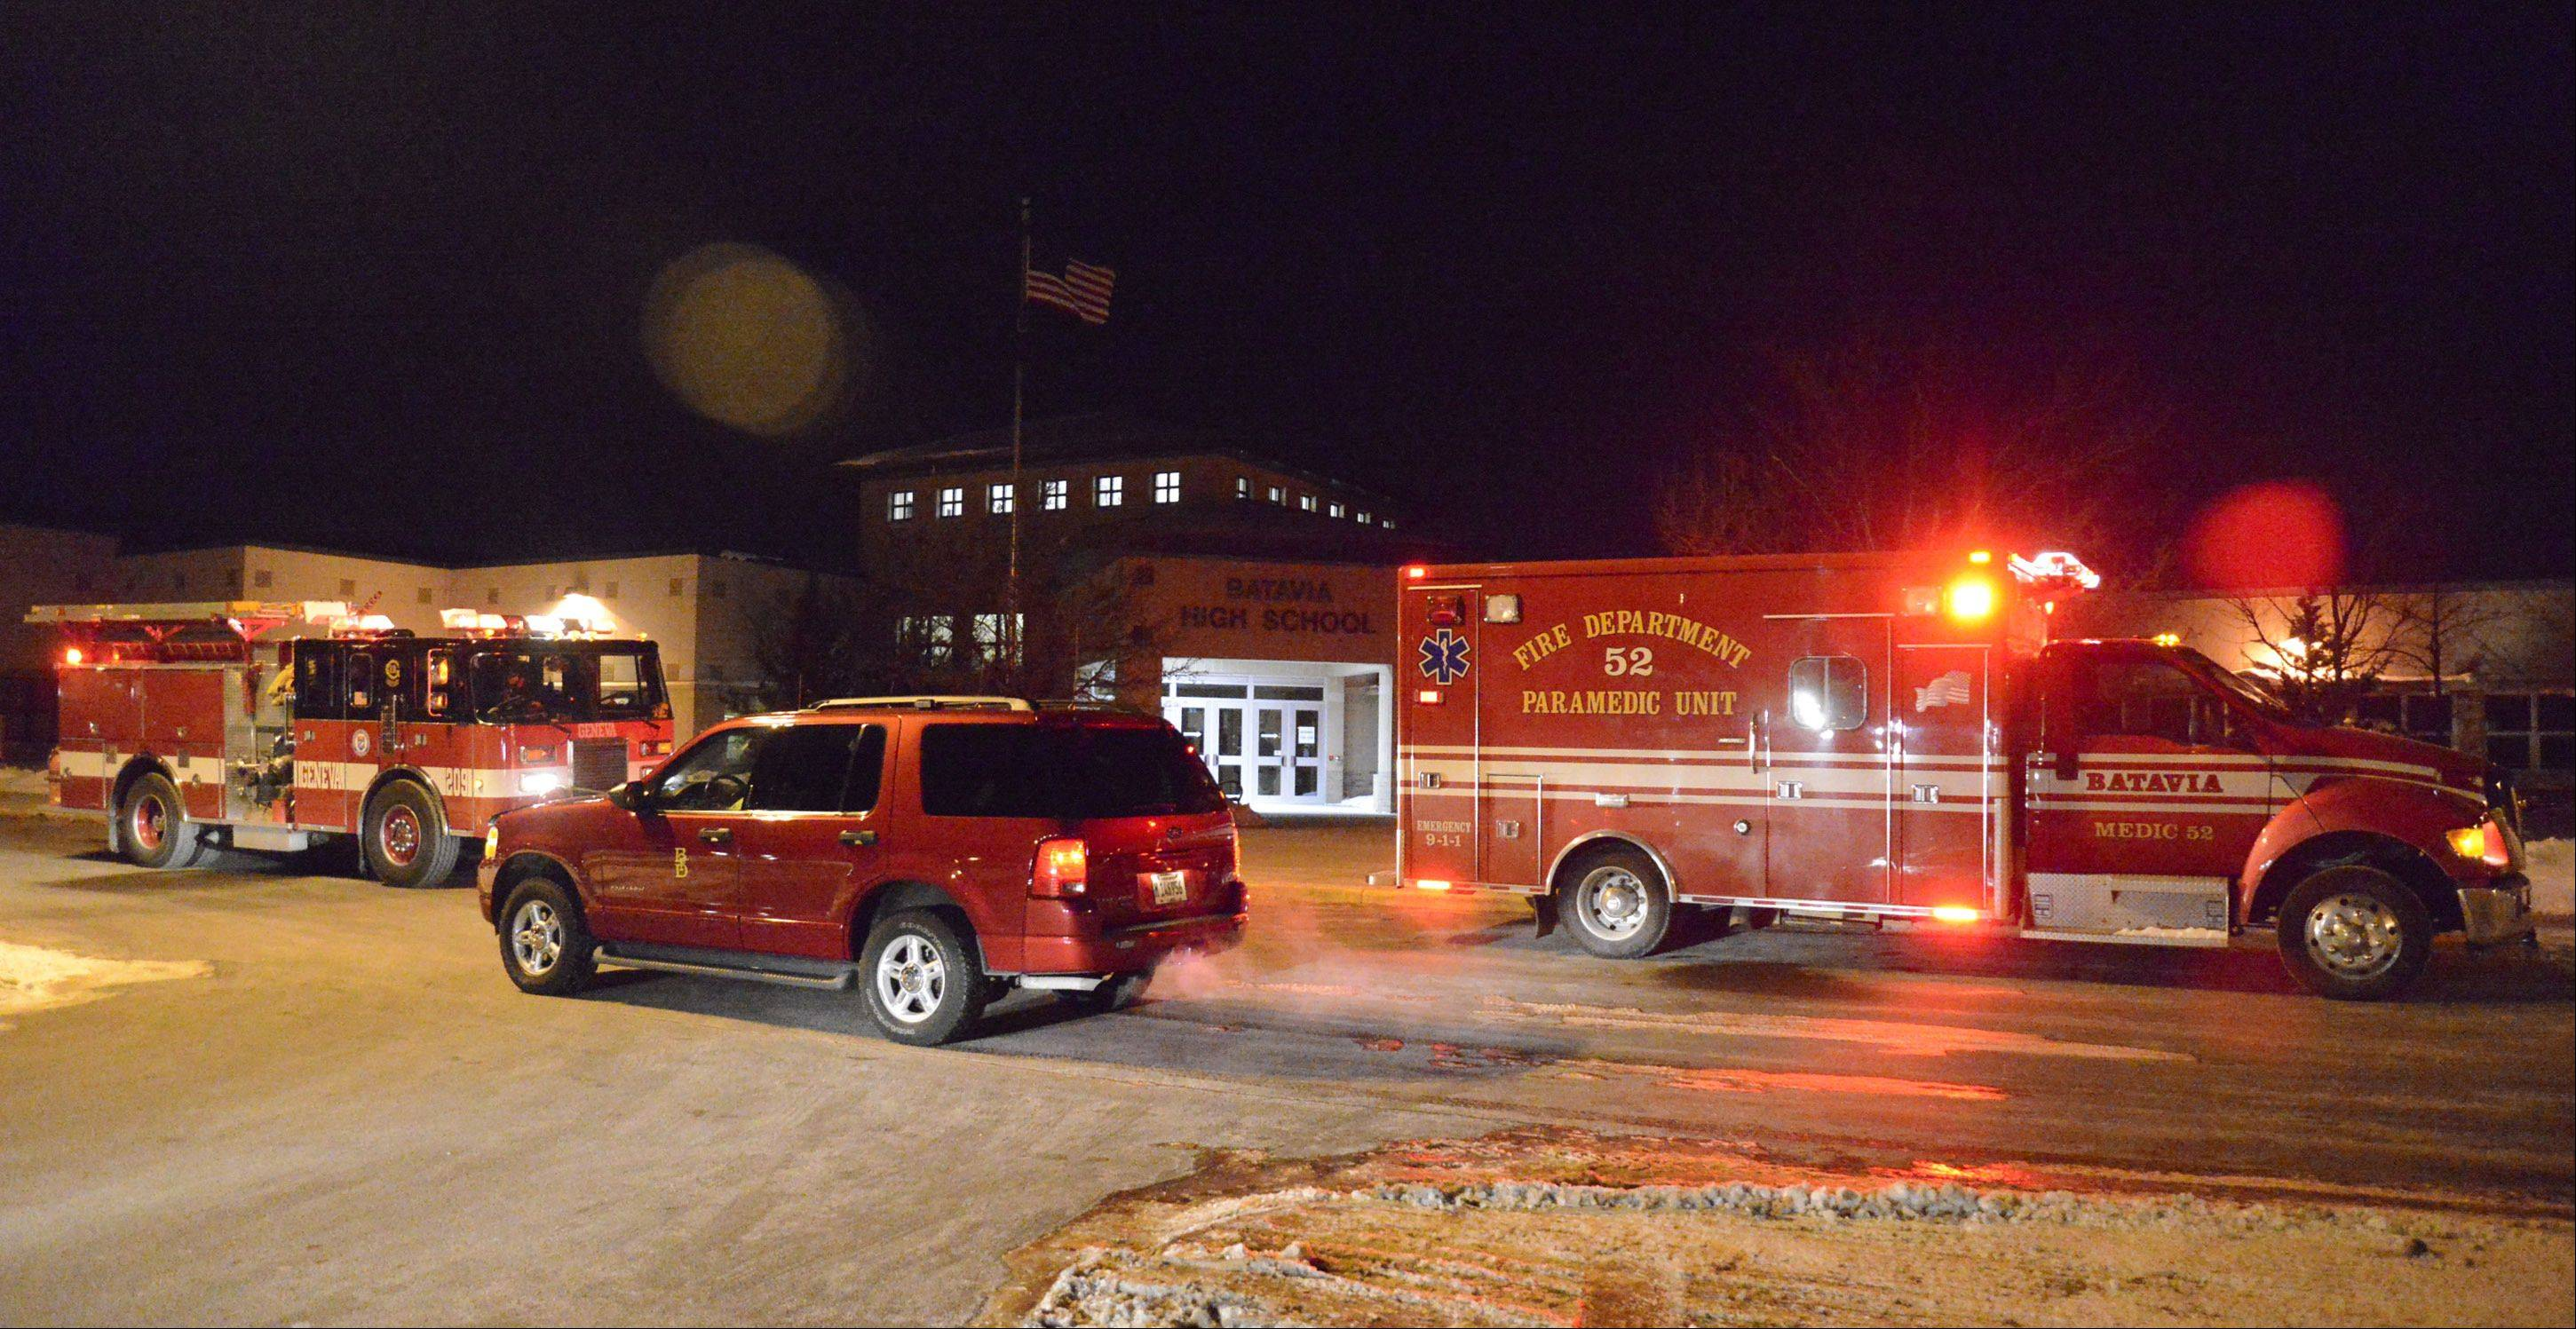 Smoke in the building set off the fire alarms inside Batavia High School on Friday night. The building was evacuated, but people were let back in within about 45 minutes.